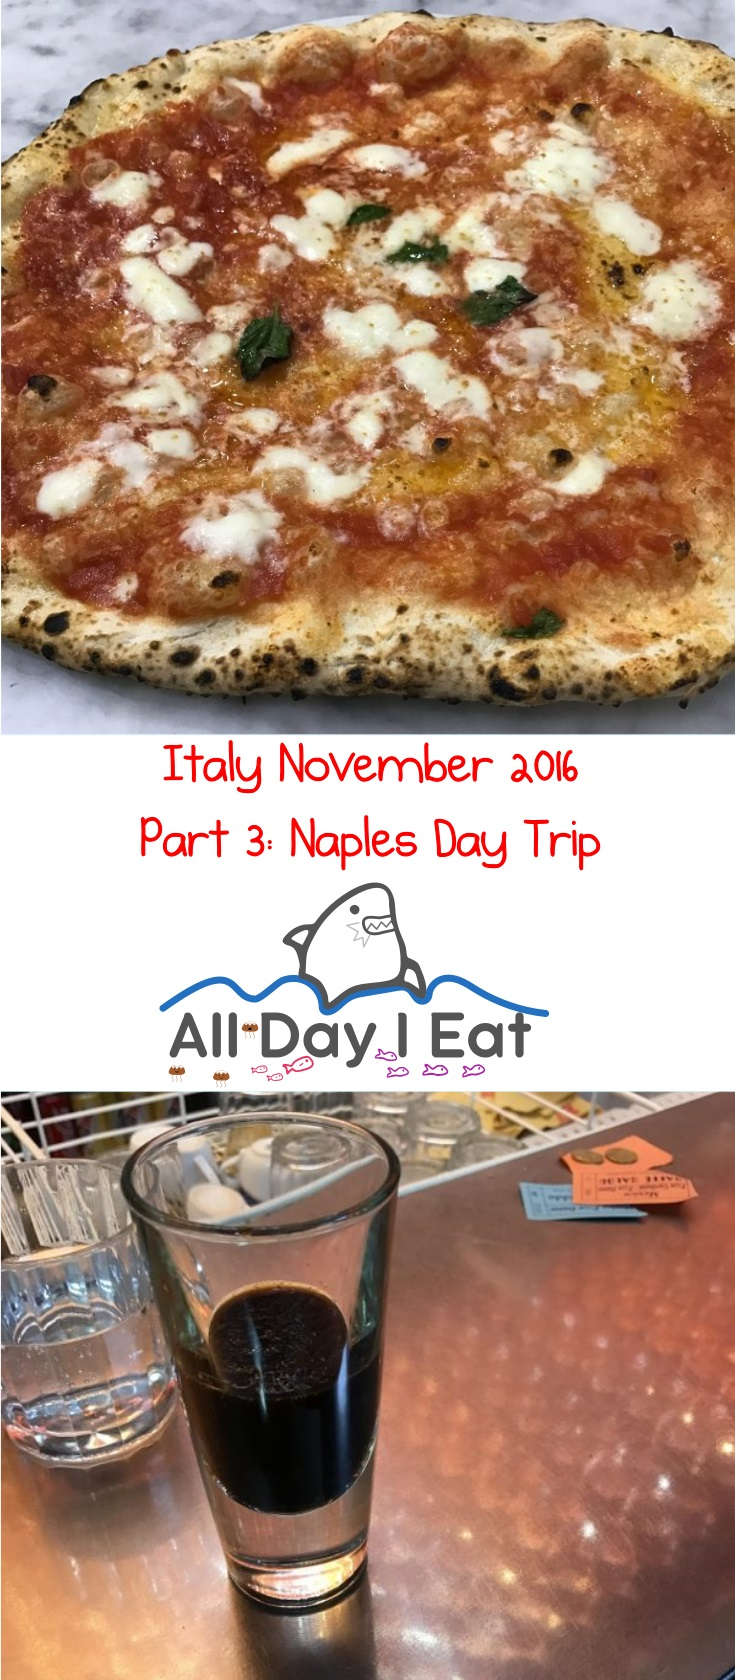 Italy November 2016 Part 3: Naples Day Trip - Ideas for your next visit | www.alldayieat.com